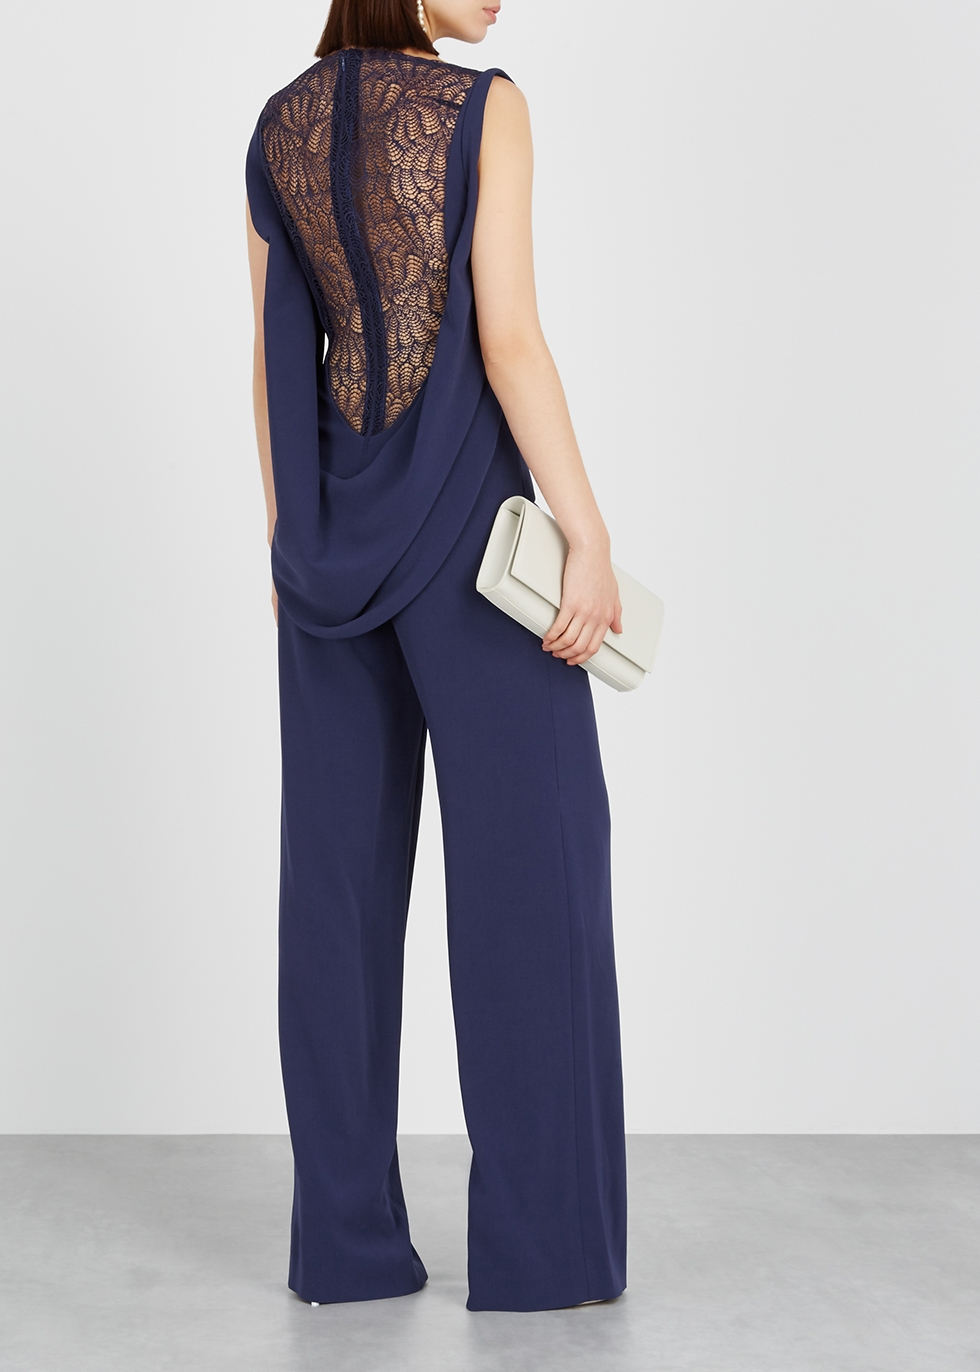 9066382eaac9 Designer Jumpsuits and Luxury Playsuits - Harvey Nichols